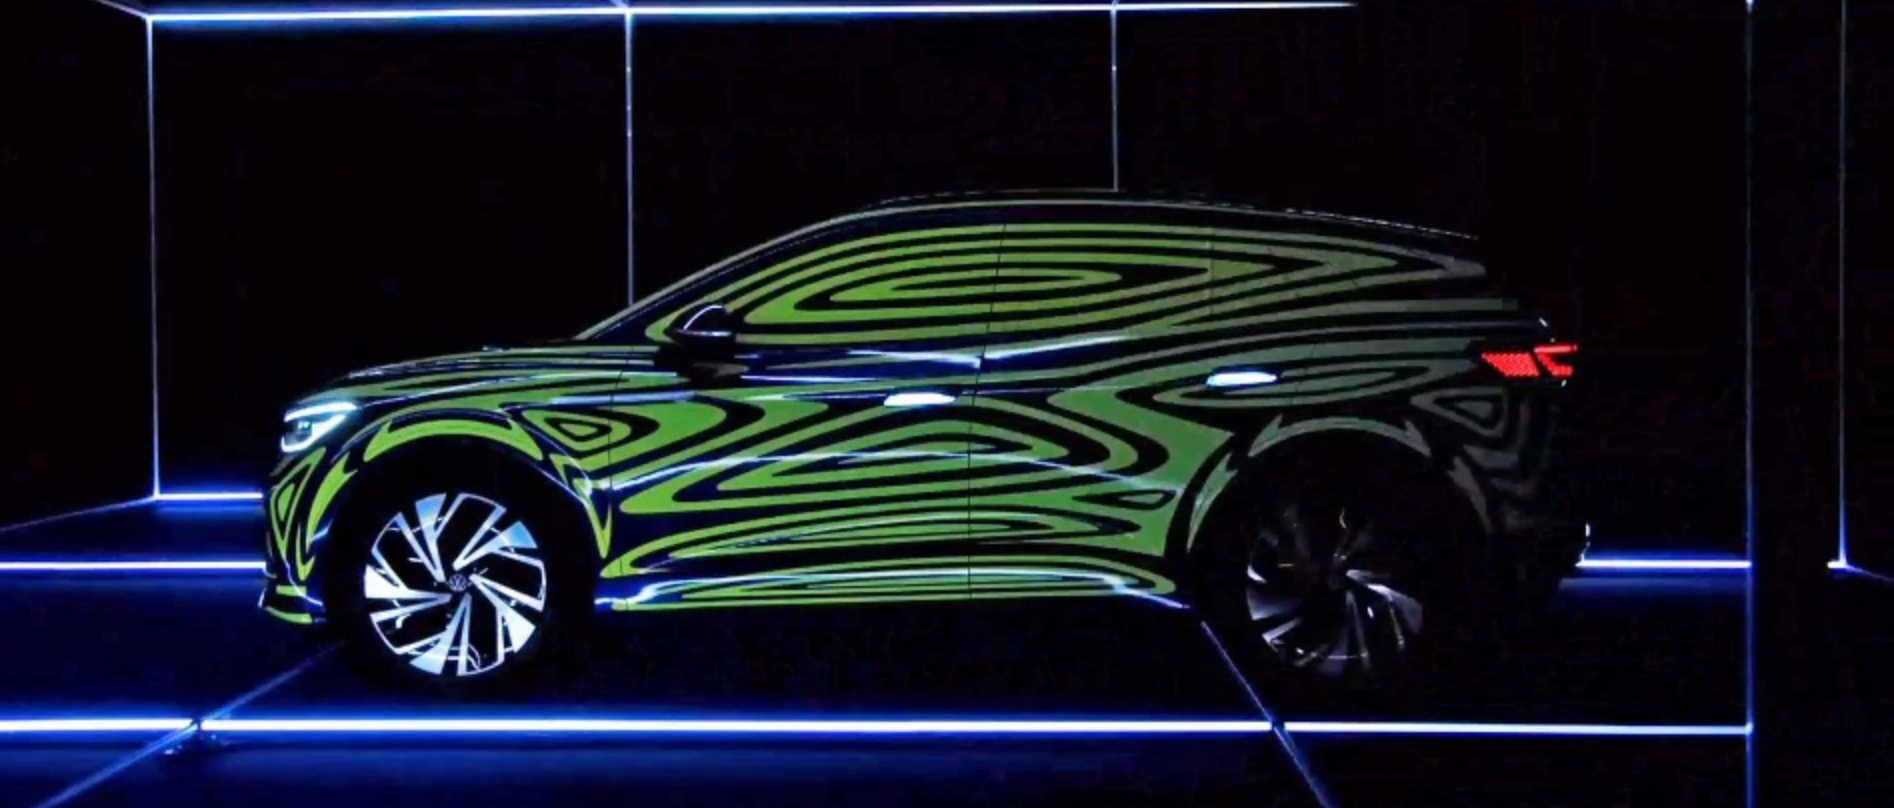 VW teases ID 4 electric crossover for US market coming next